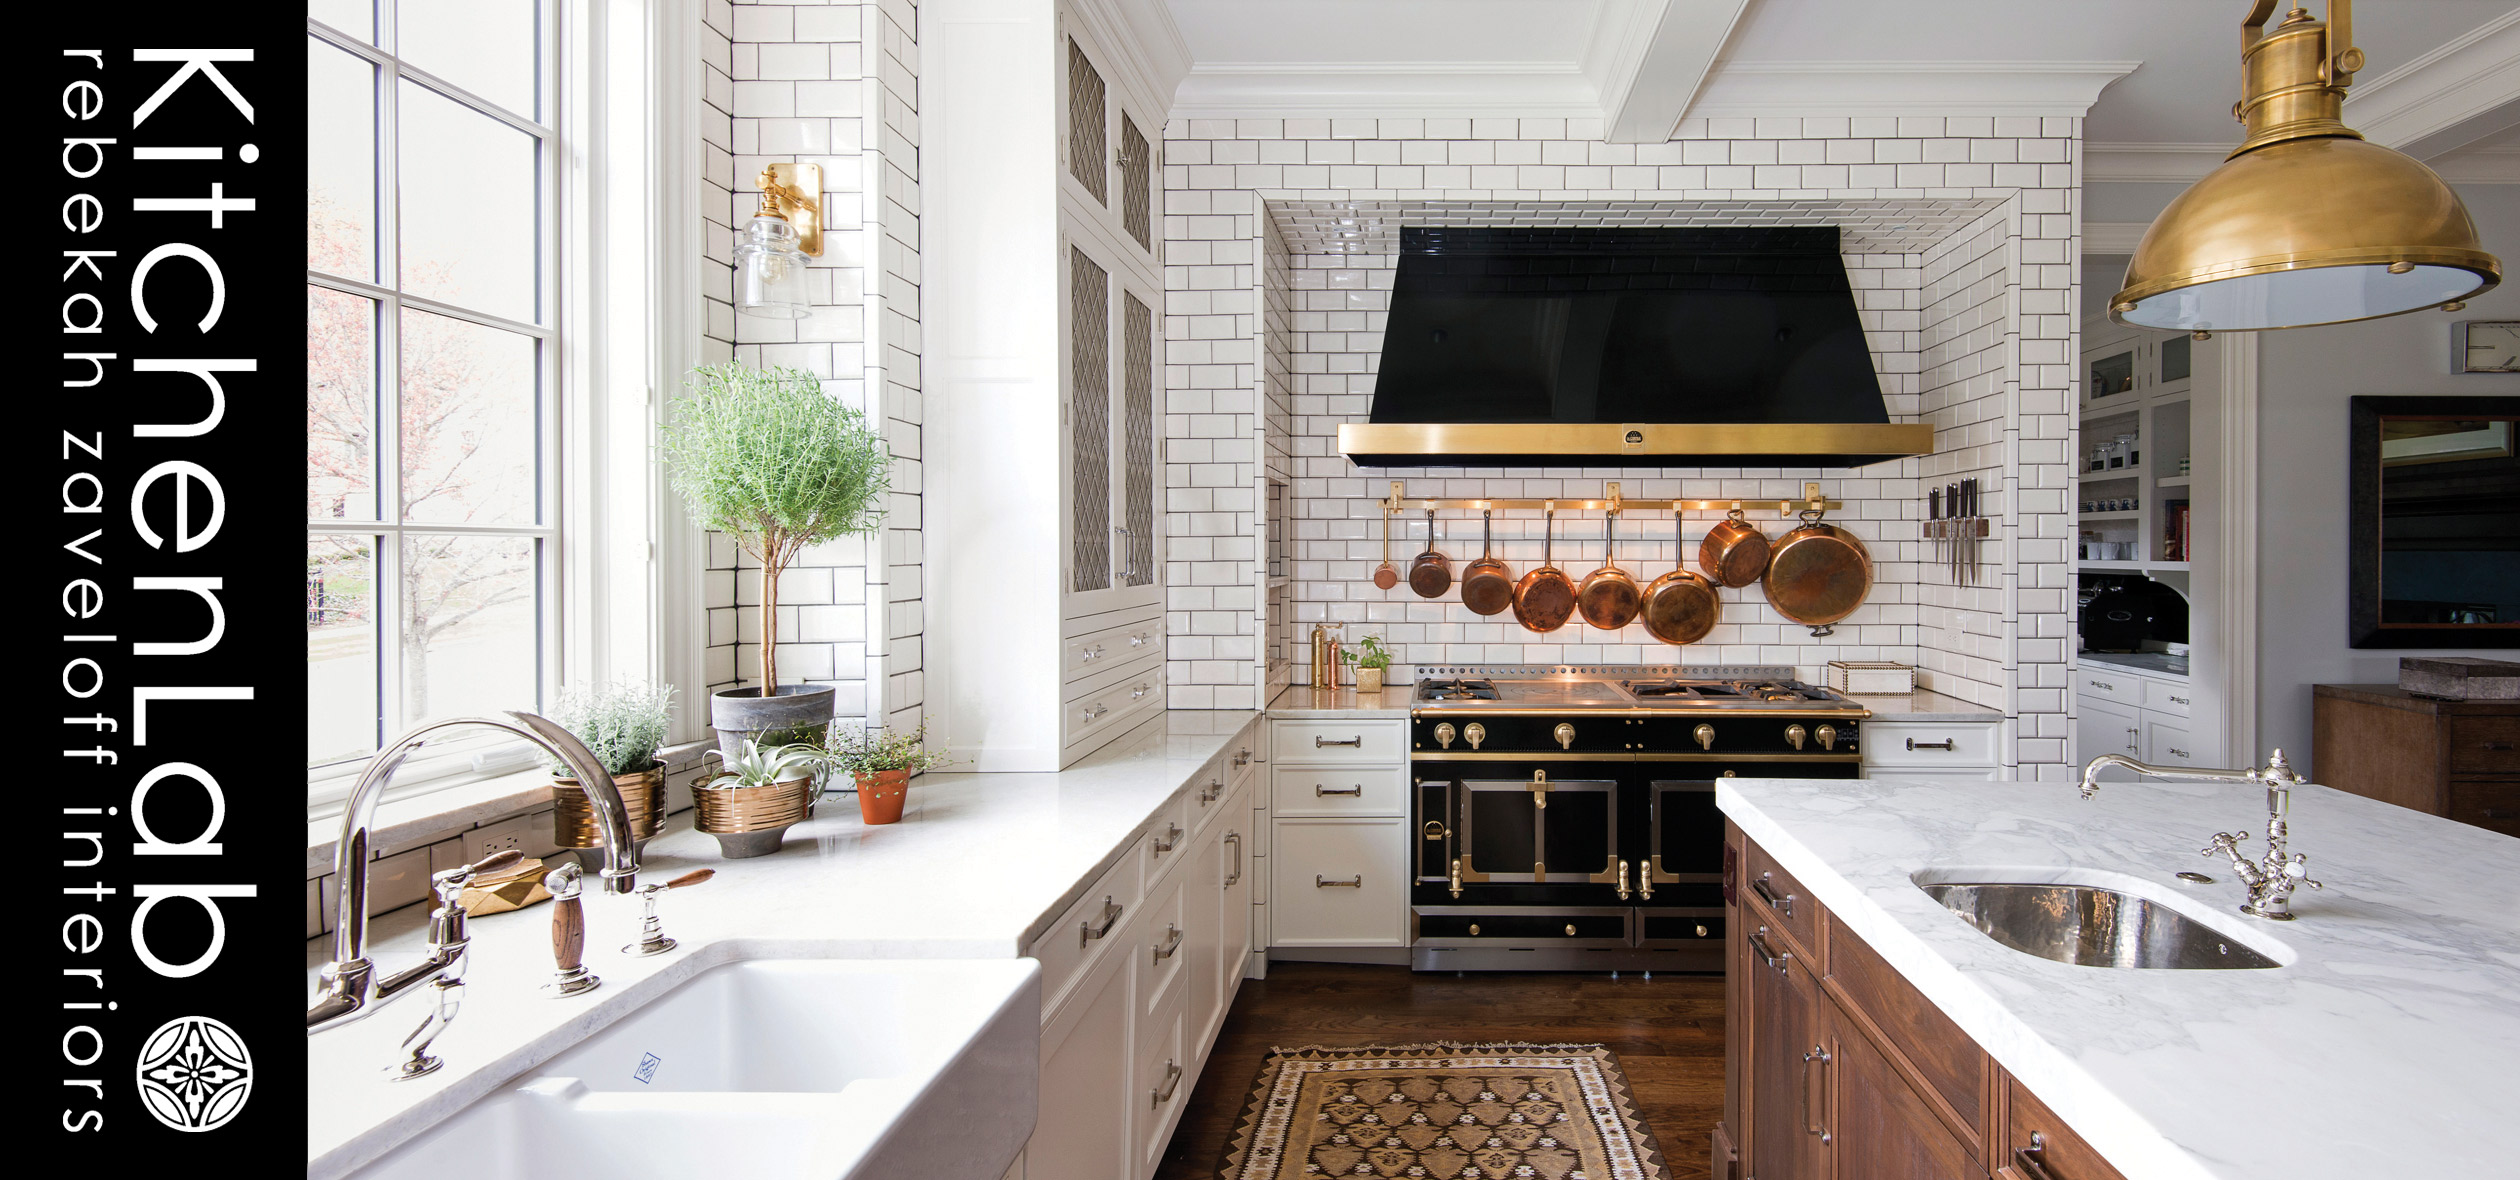 Kitchenlab Seeks Kitchen Designer Project Manager Keercutter And Associates